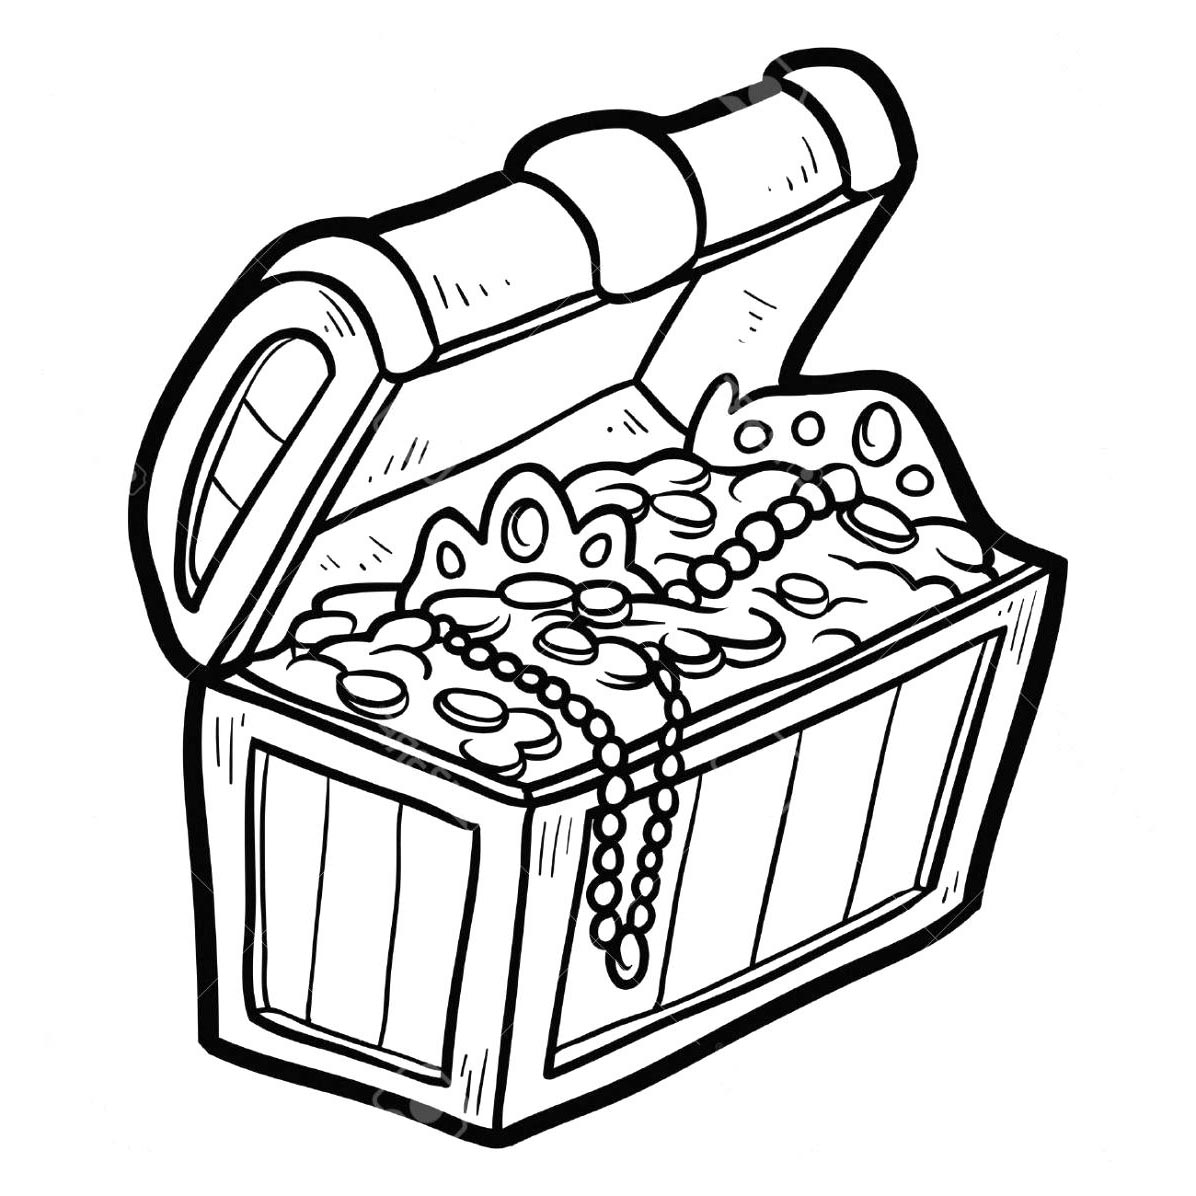 Treasure chest clip art. Free printable black and white clipart for teachers